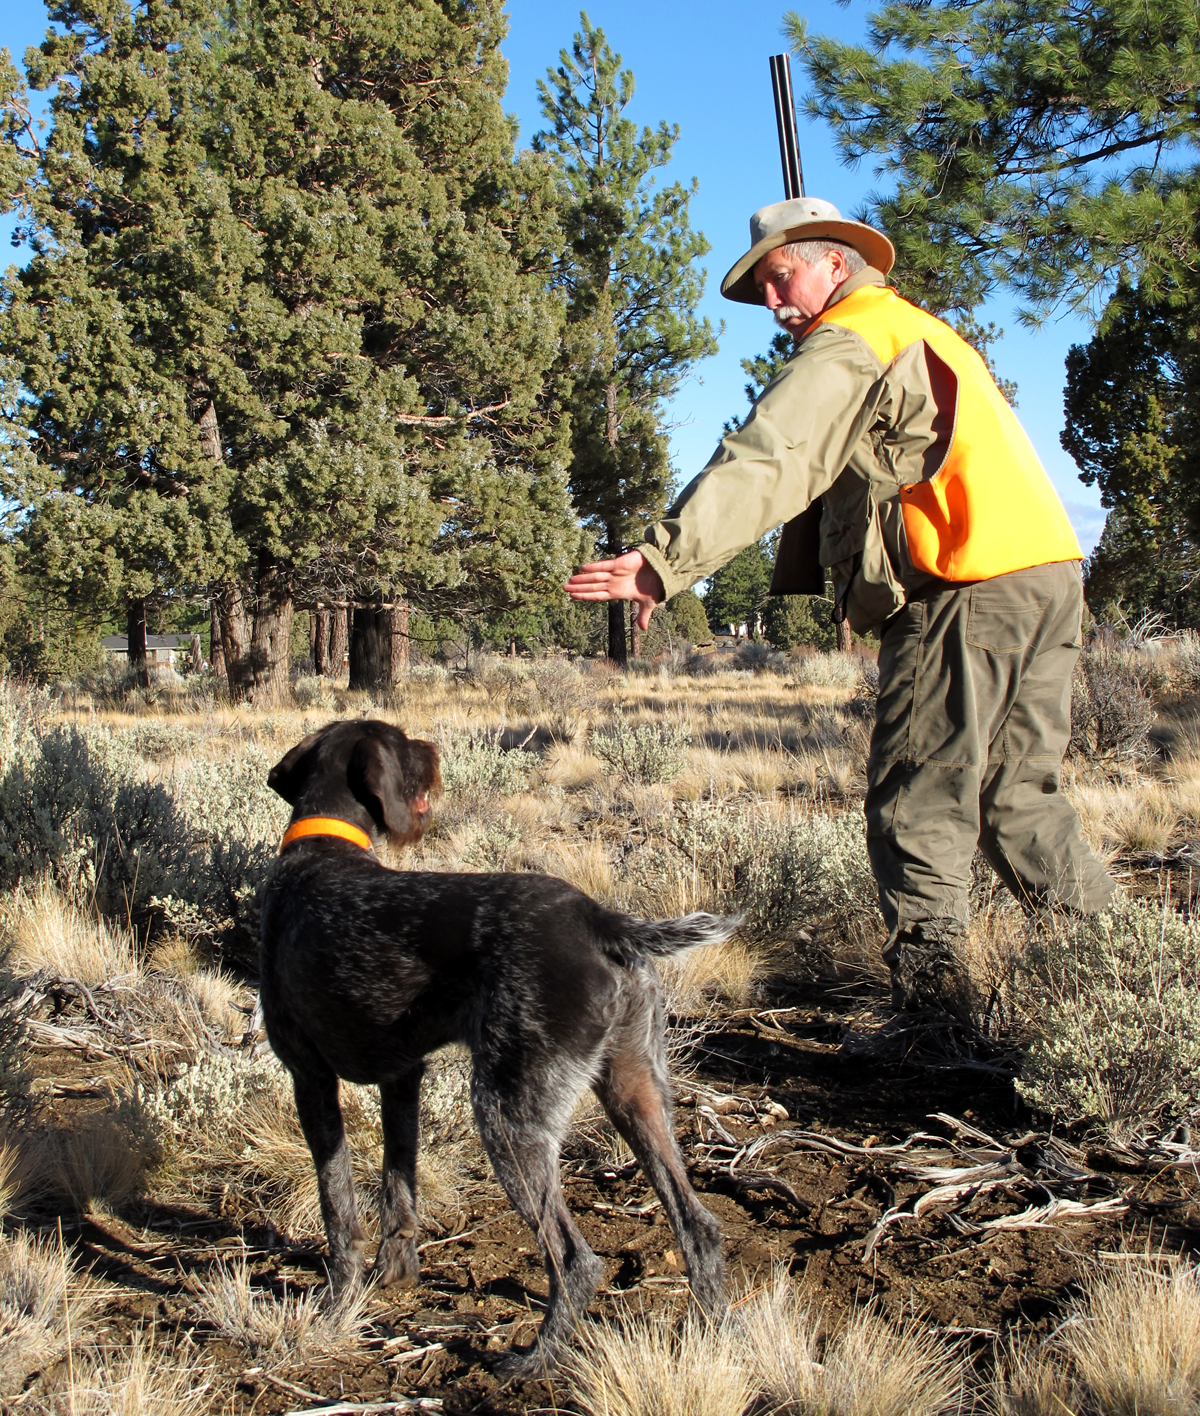 Breaking Bad: How to Train Your Dog to Steady on Real Birds